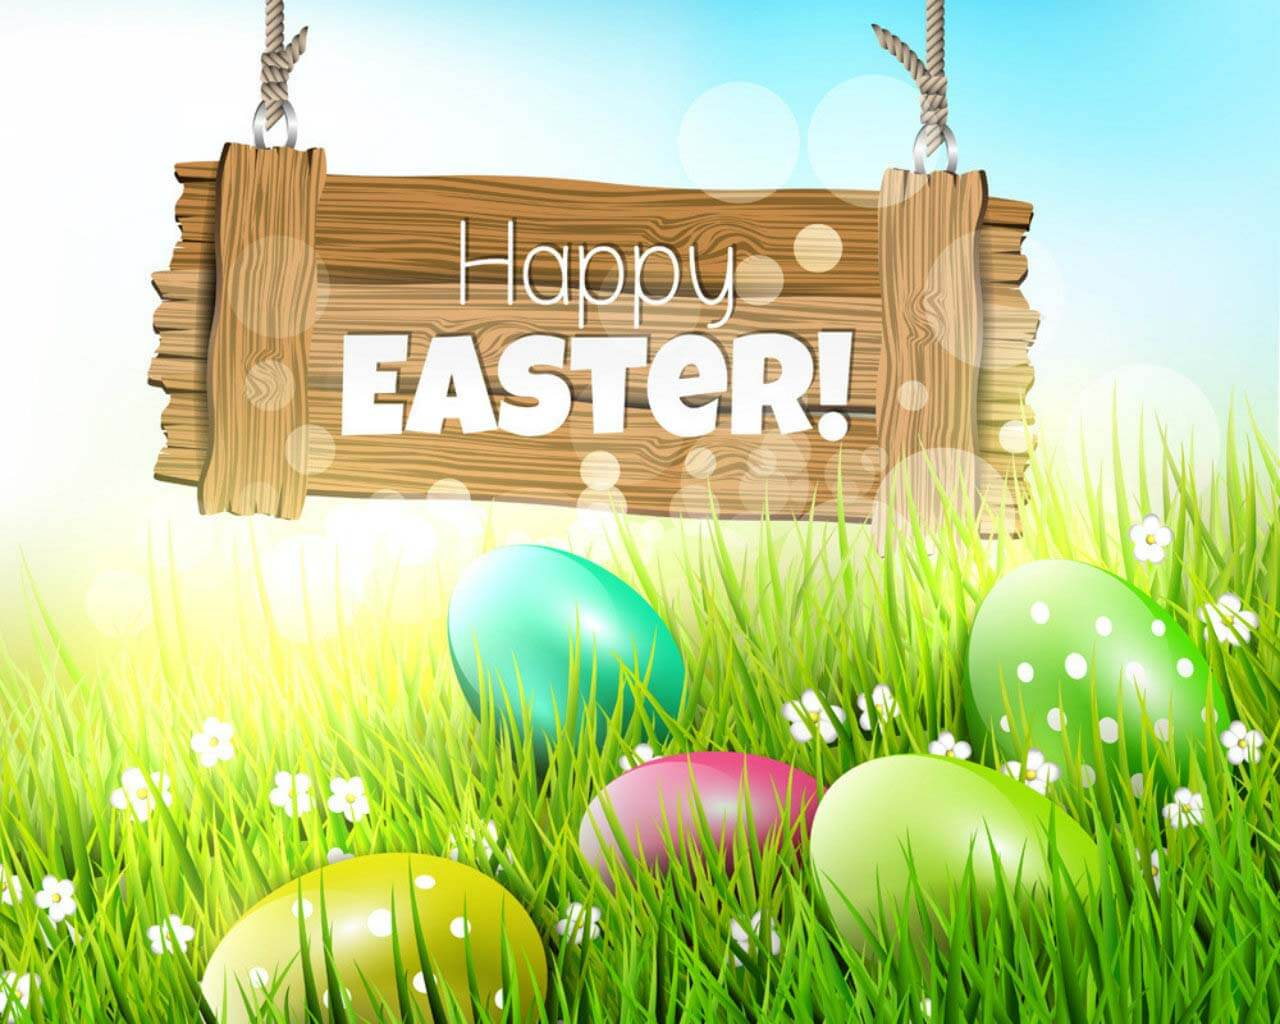 happy easter greetings wishes eggs background hd wallpaper